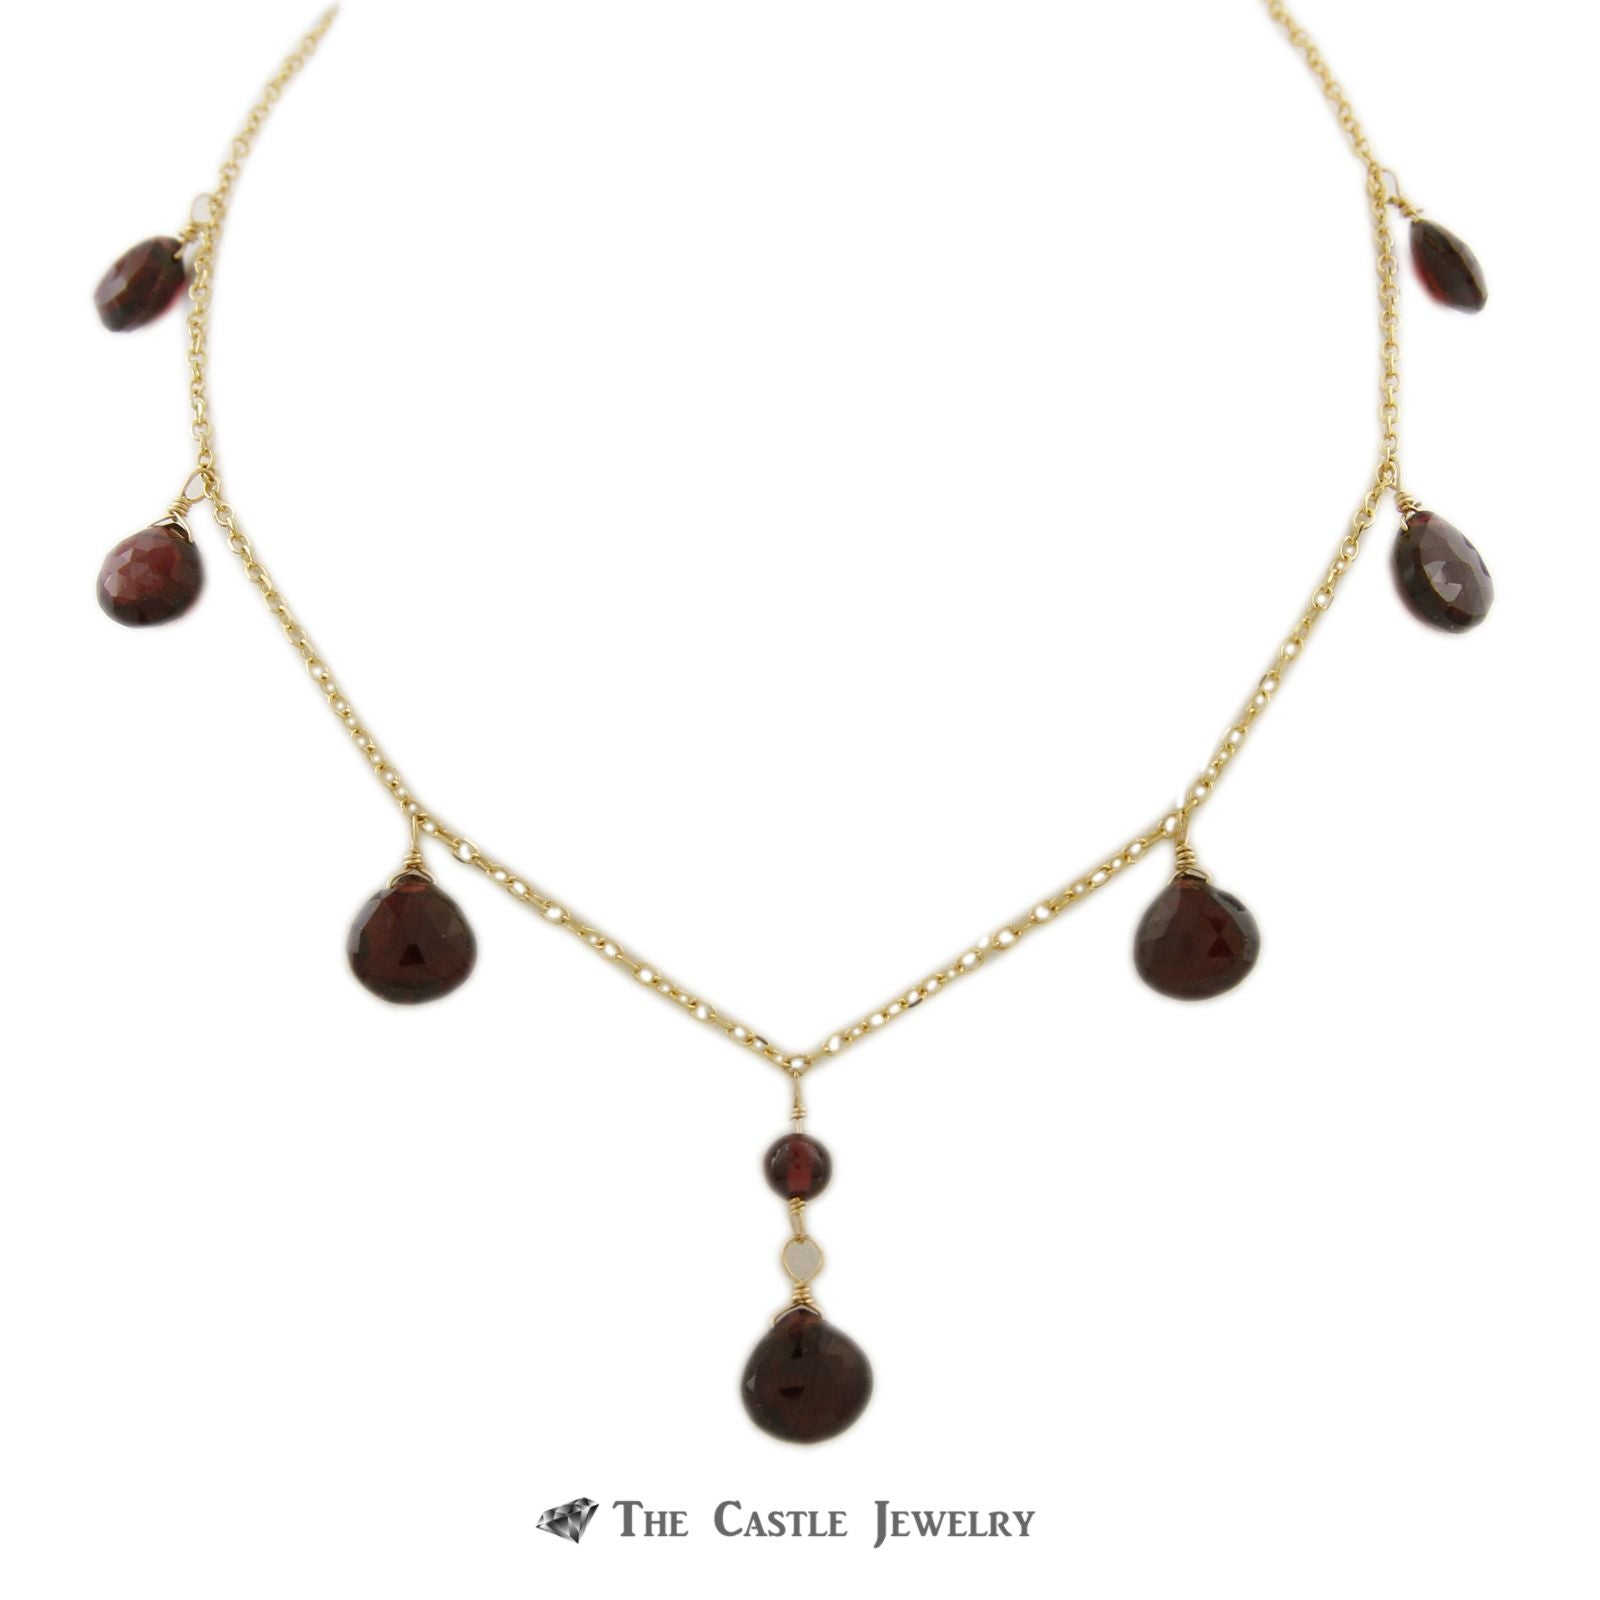 Dangling Briolette Garnet Necklace on Oval Link Chain w/ Removable Extension in 14K Gold